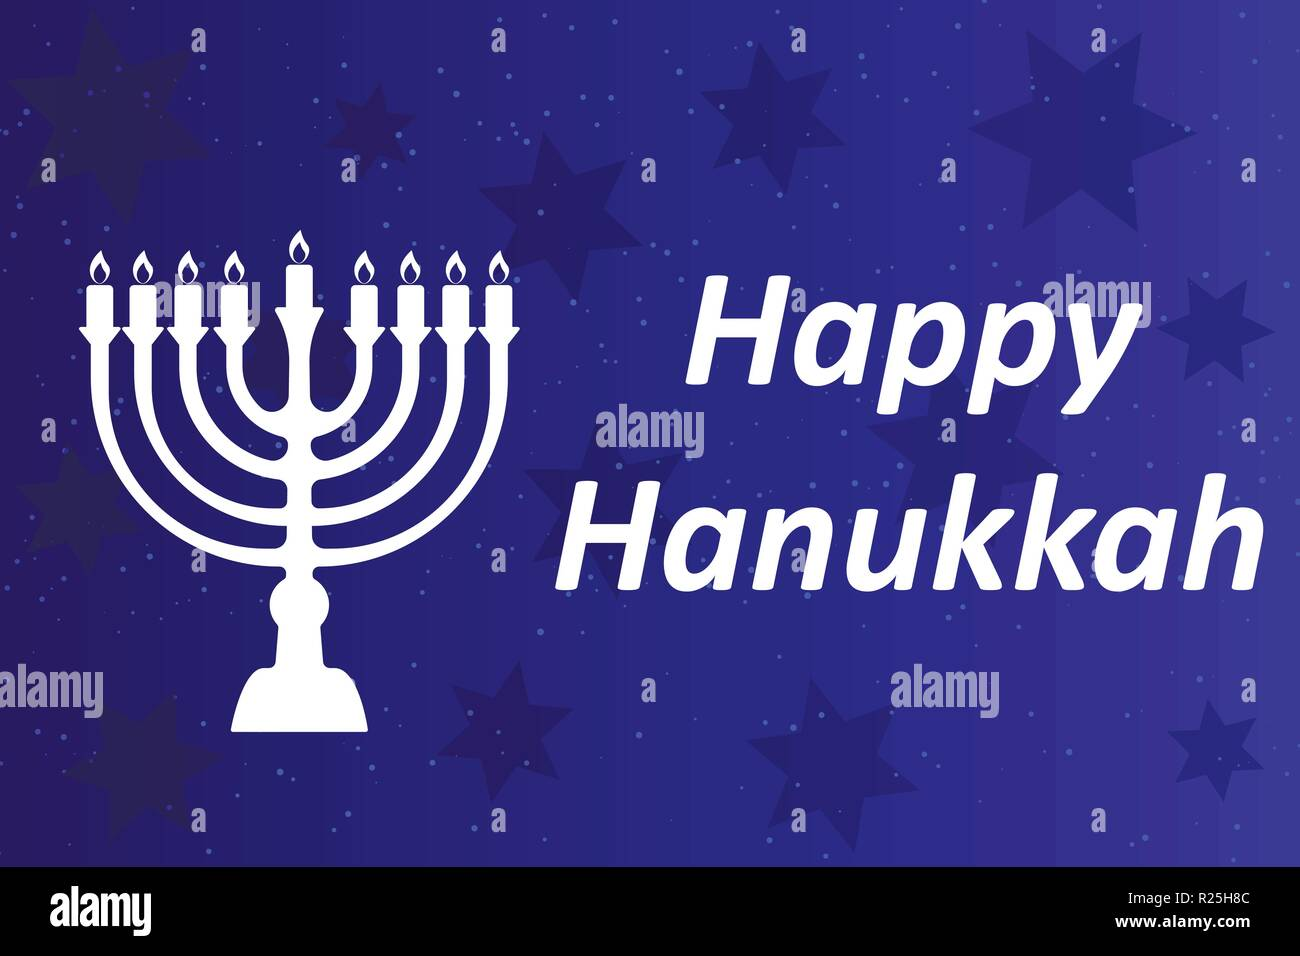 Hanukkah Typographic Vector Design - Happy Hanukkah. A Stock Vector